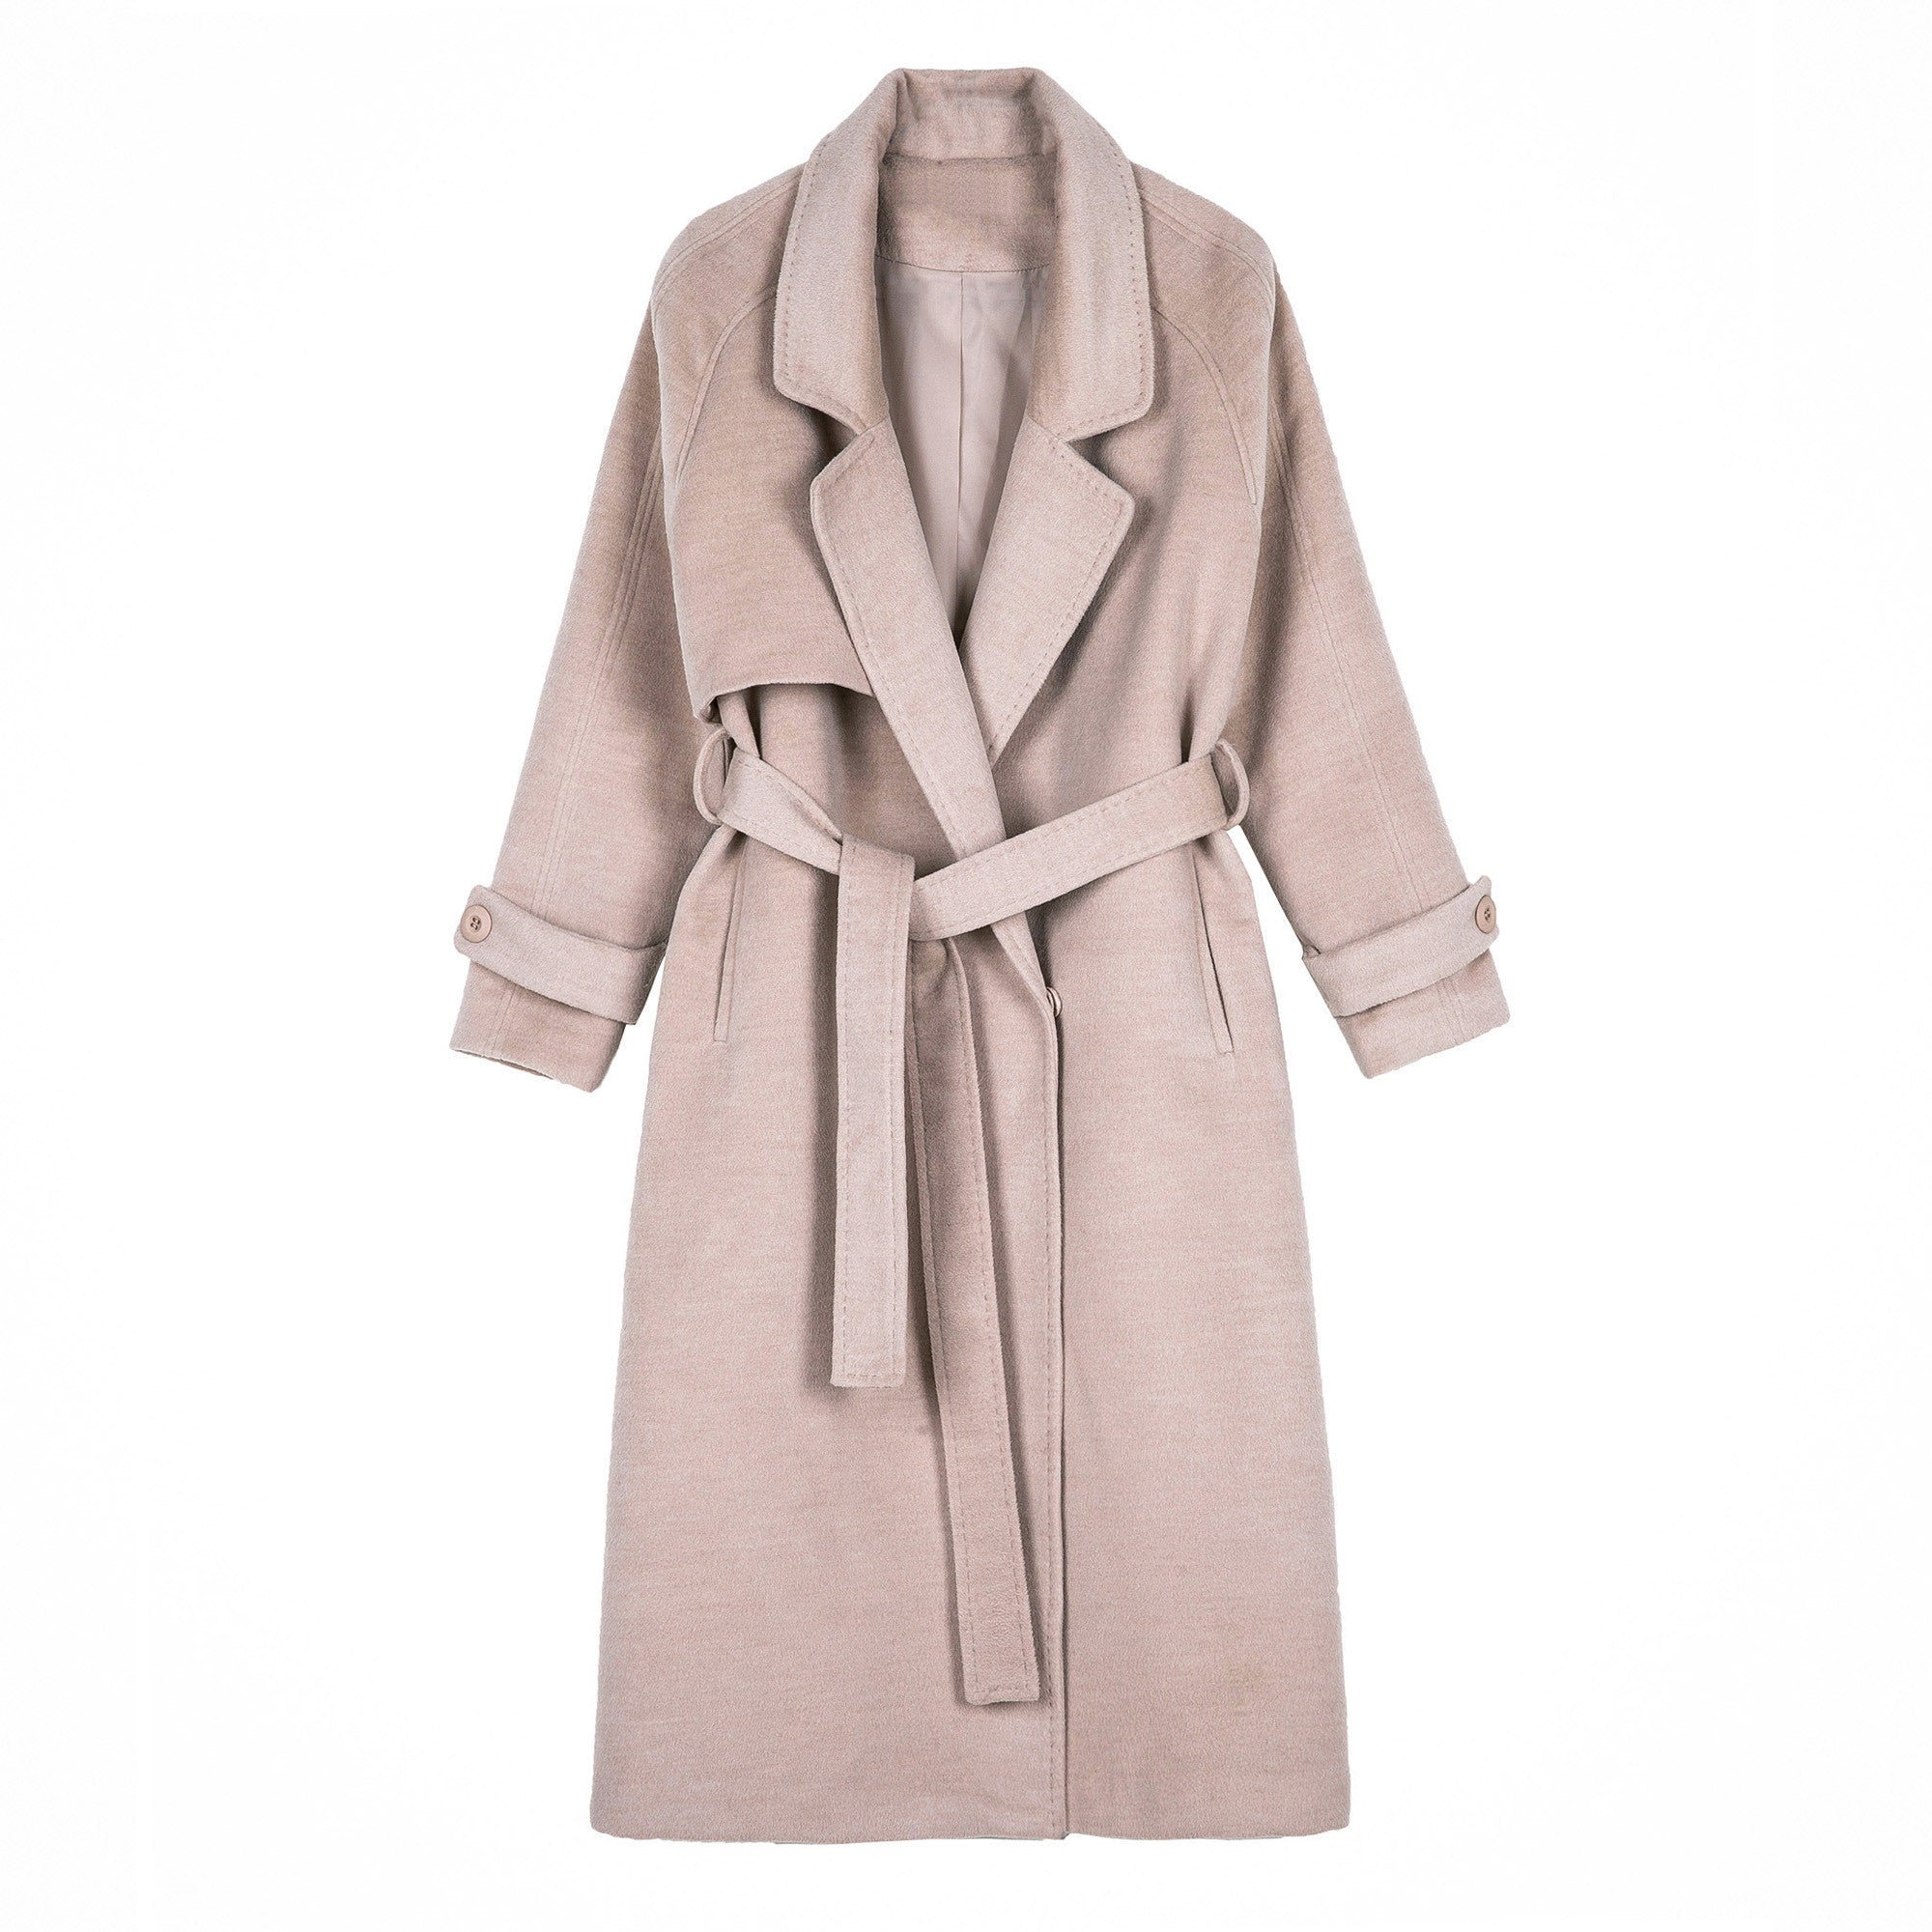 Long Belted Camel Trench Coat - Indigo